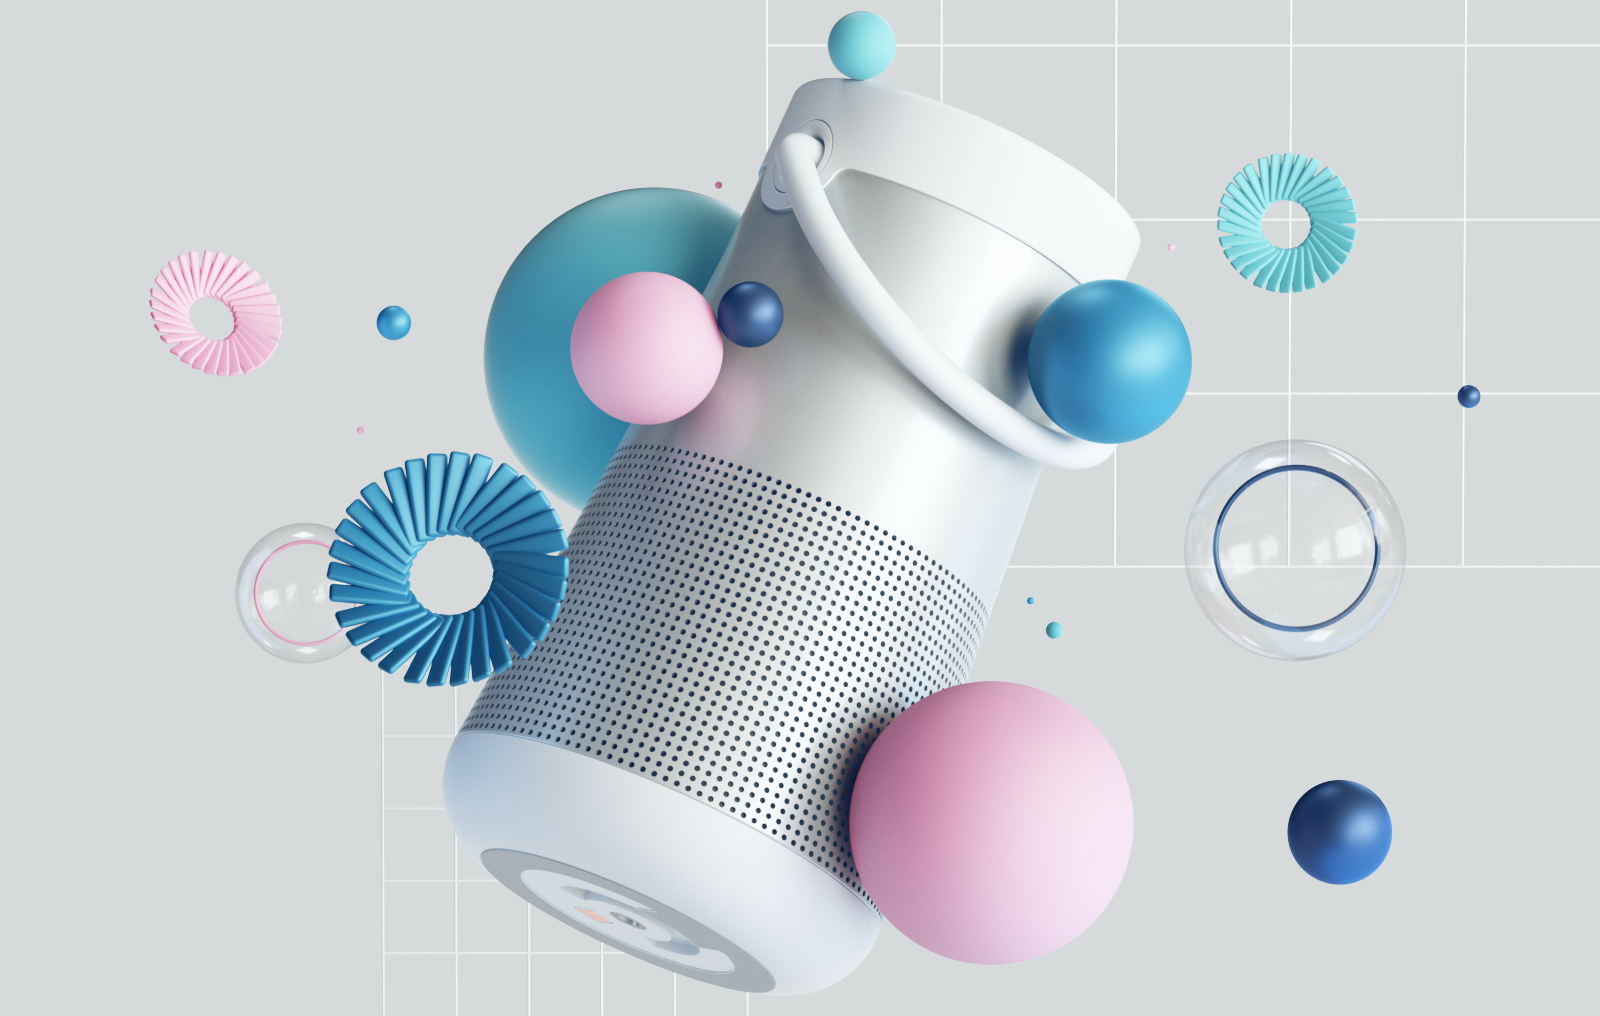 3D visualization for Bose speaker, part of UX trends 2019